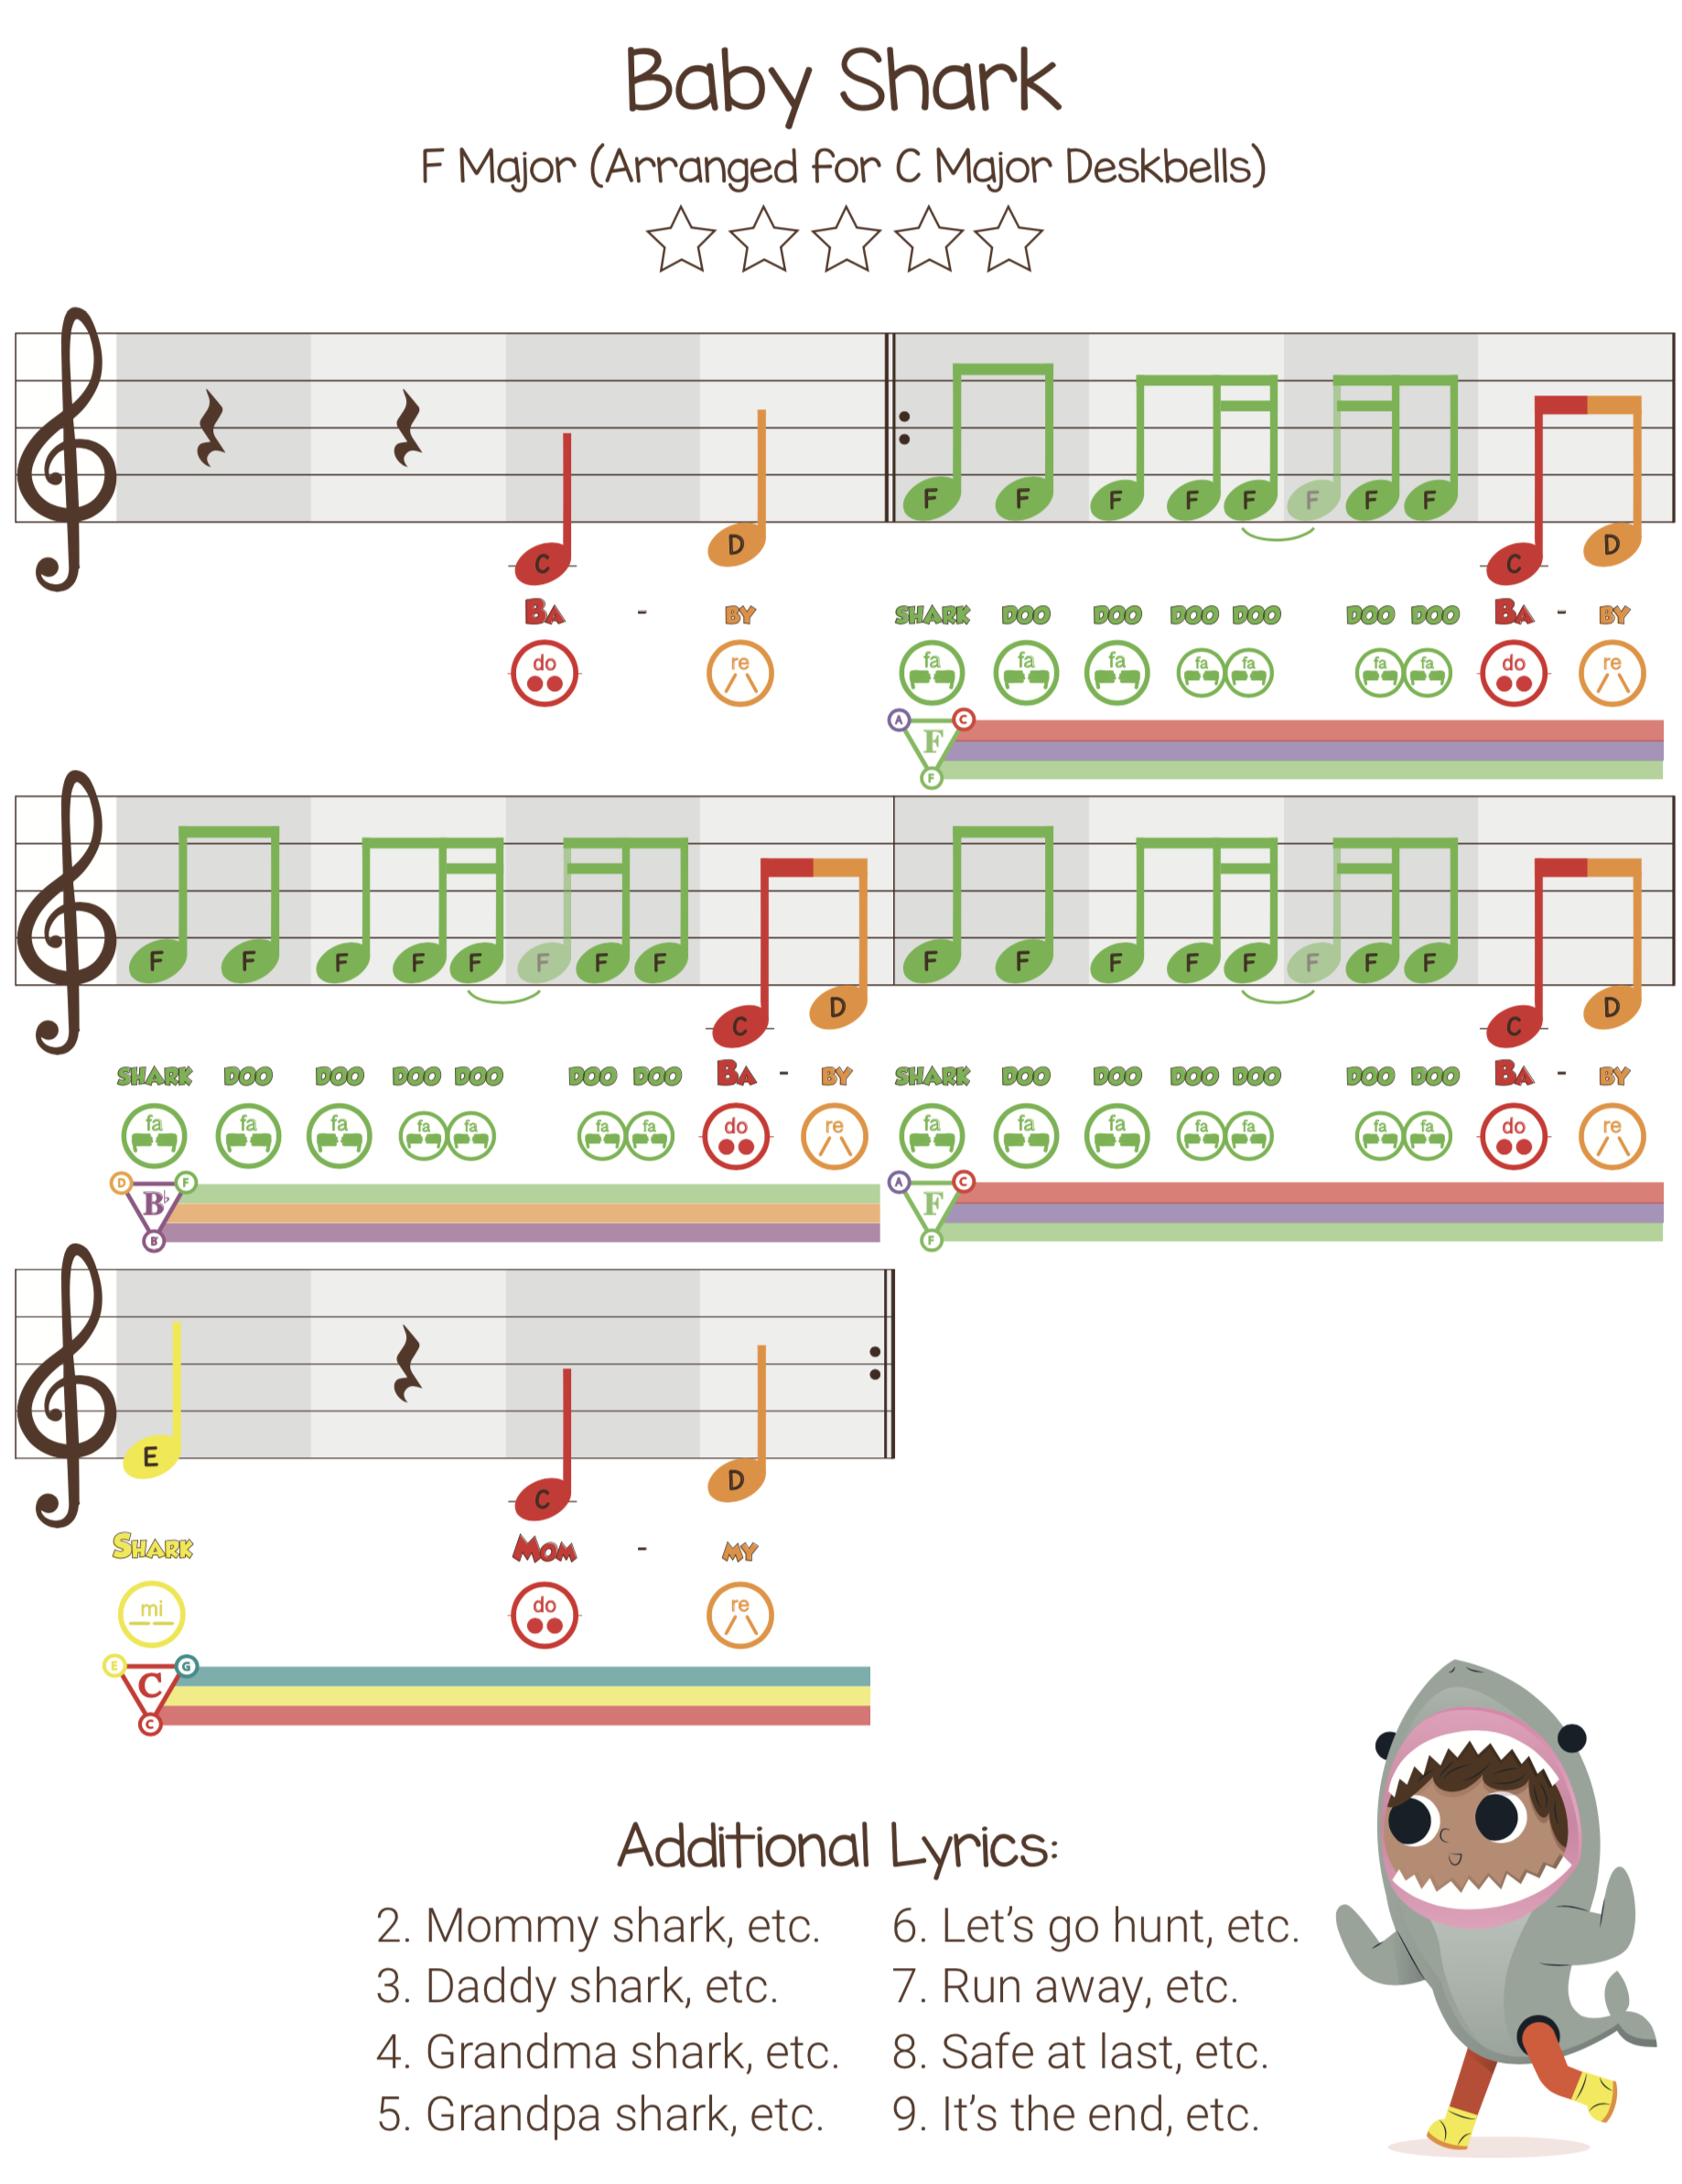 Sing, Hand-sign & Play With Baby Shark In F Major